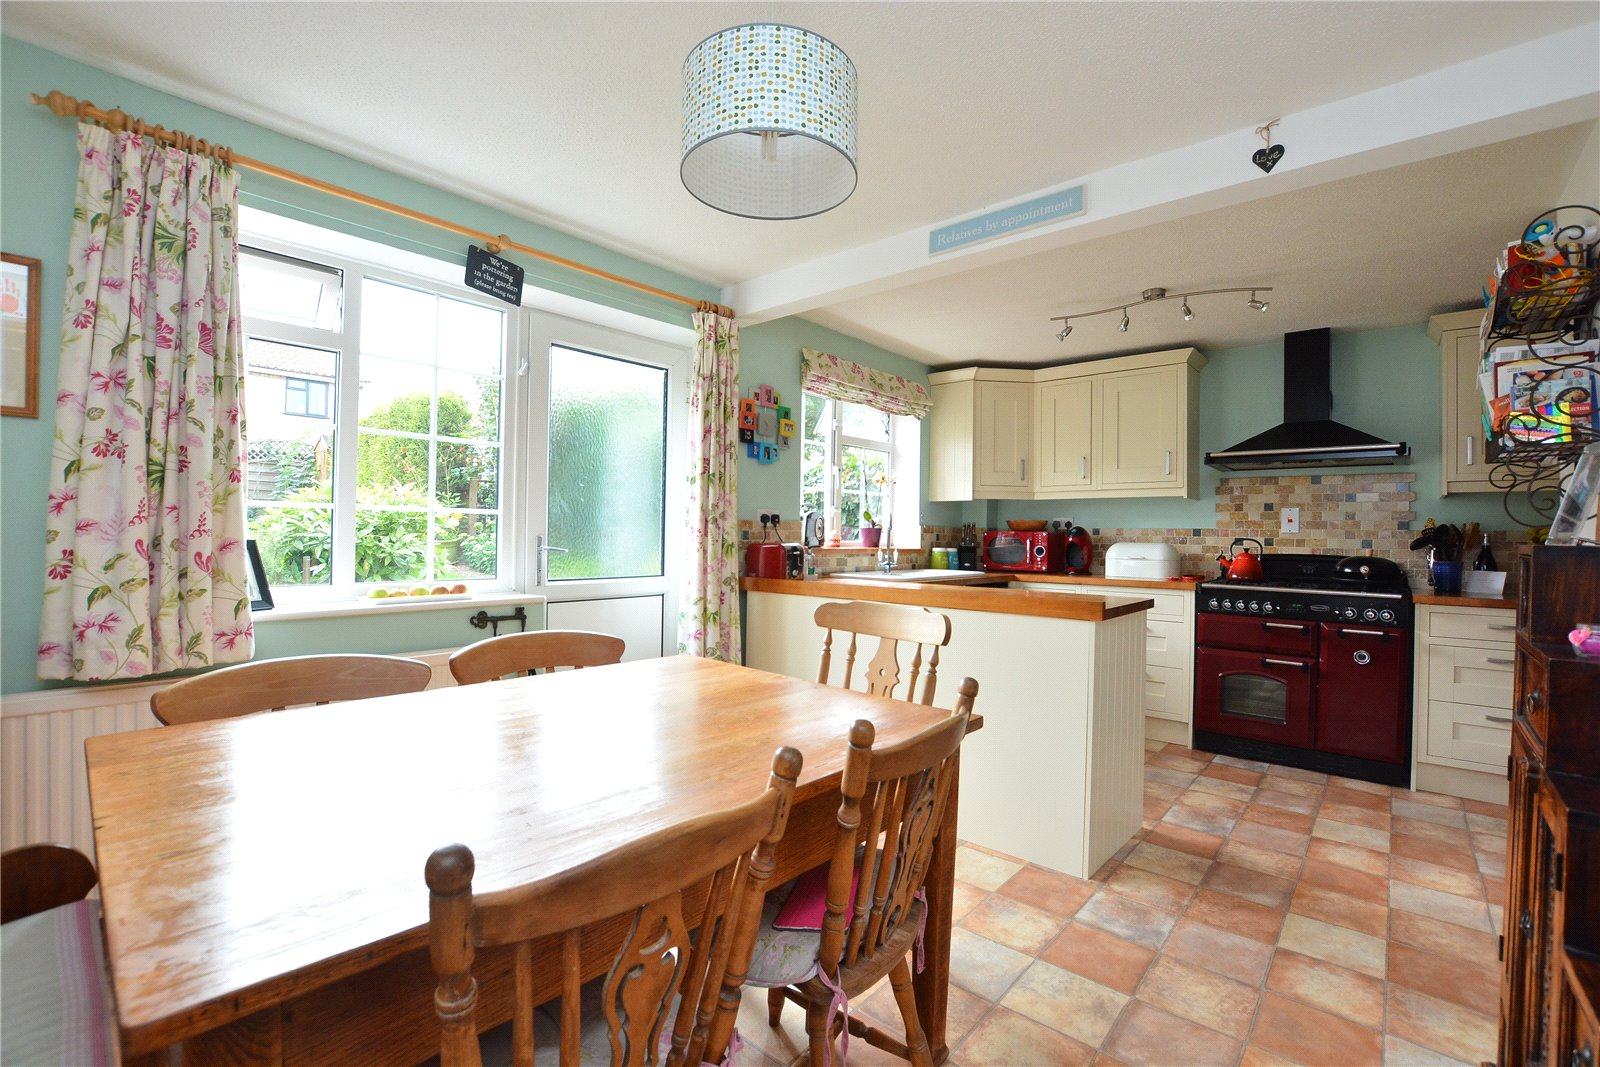 property for sale in Bramham, kitchen dining area, dining table and kitchen